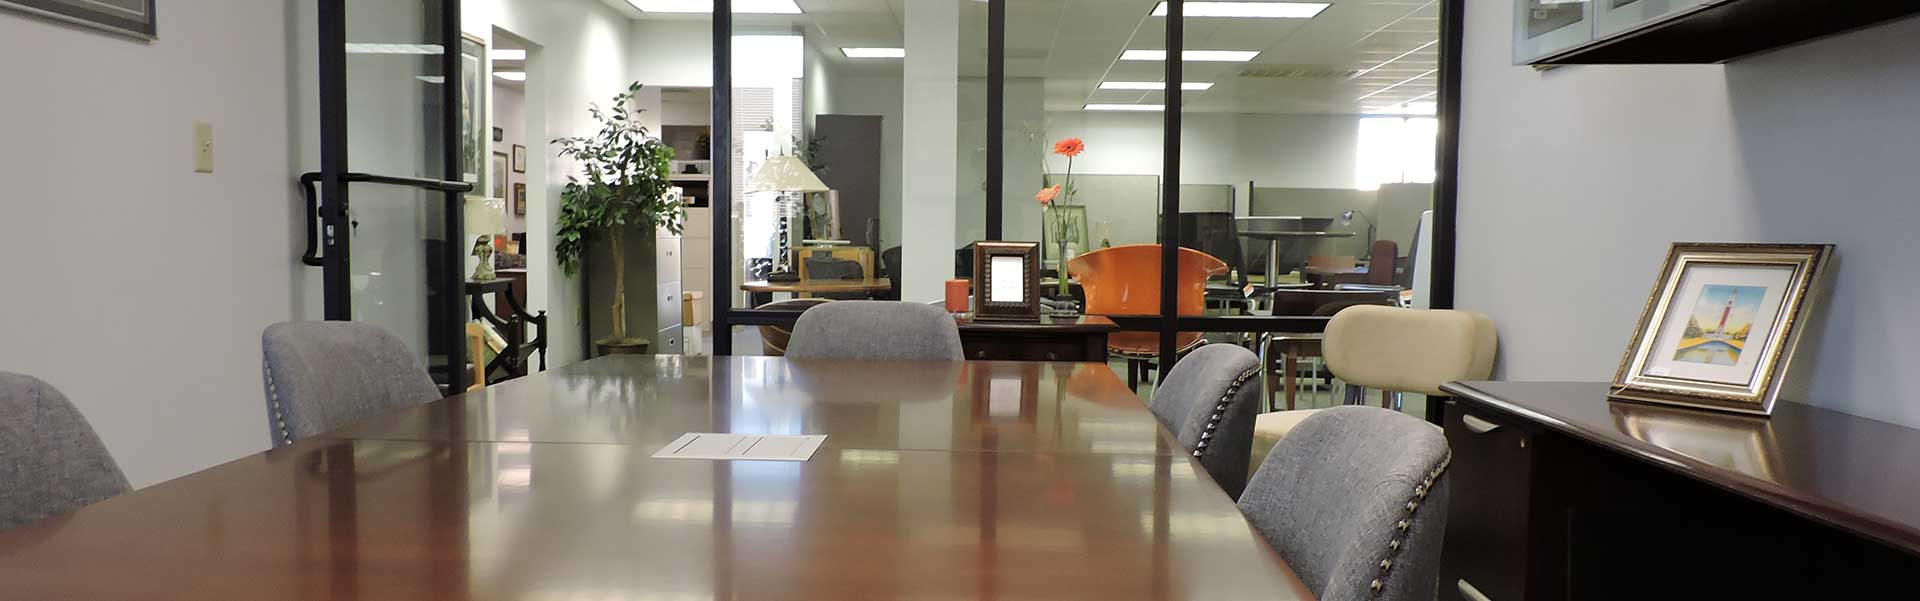 new office furniture showroom